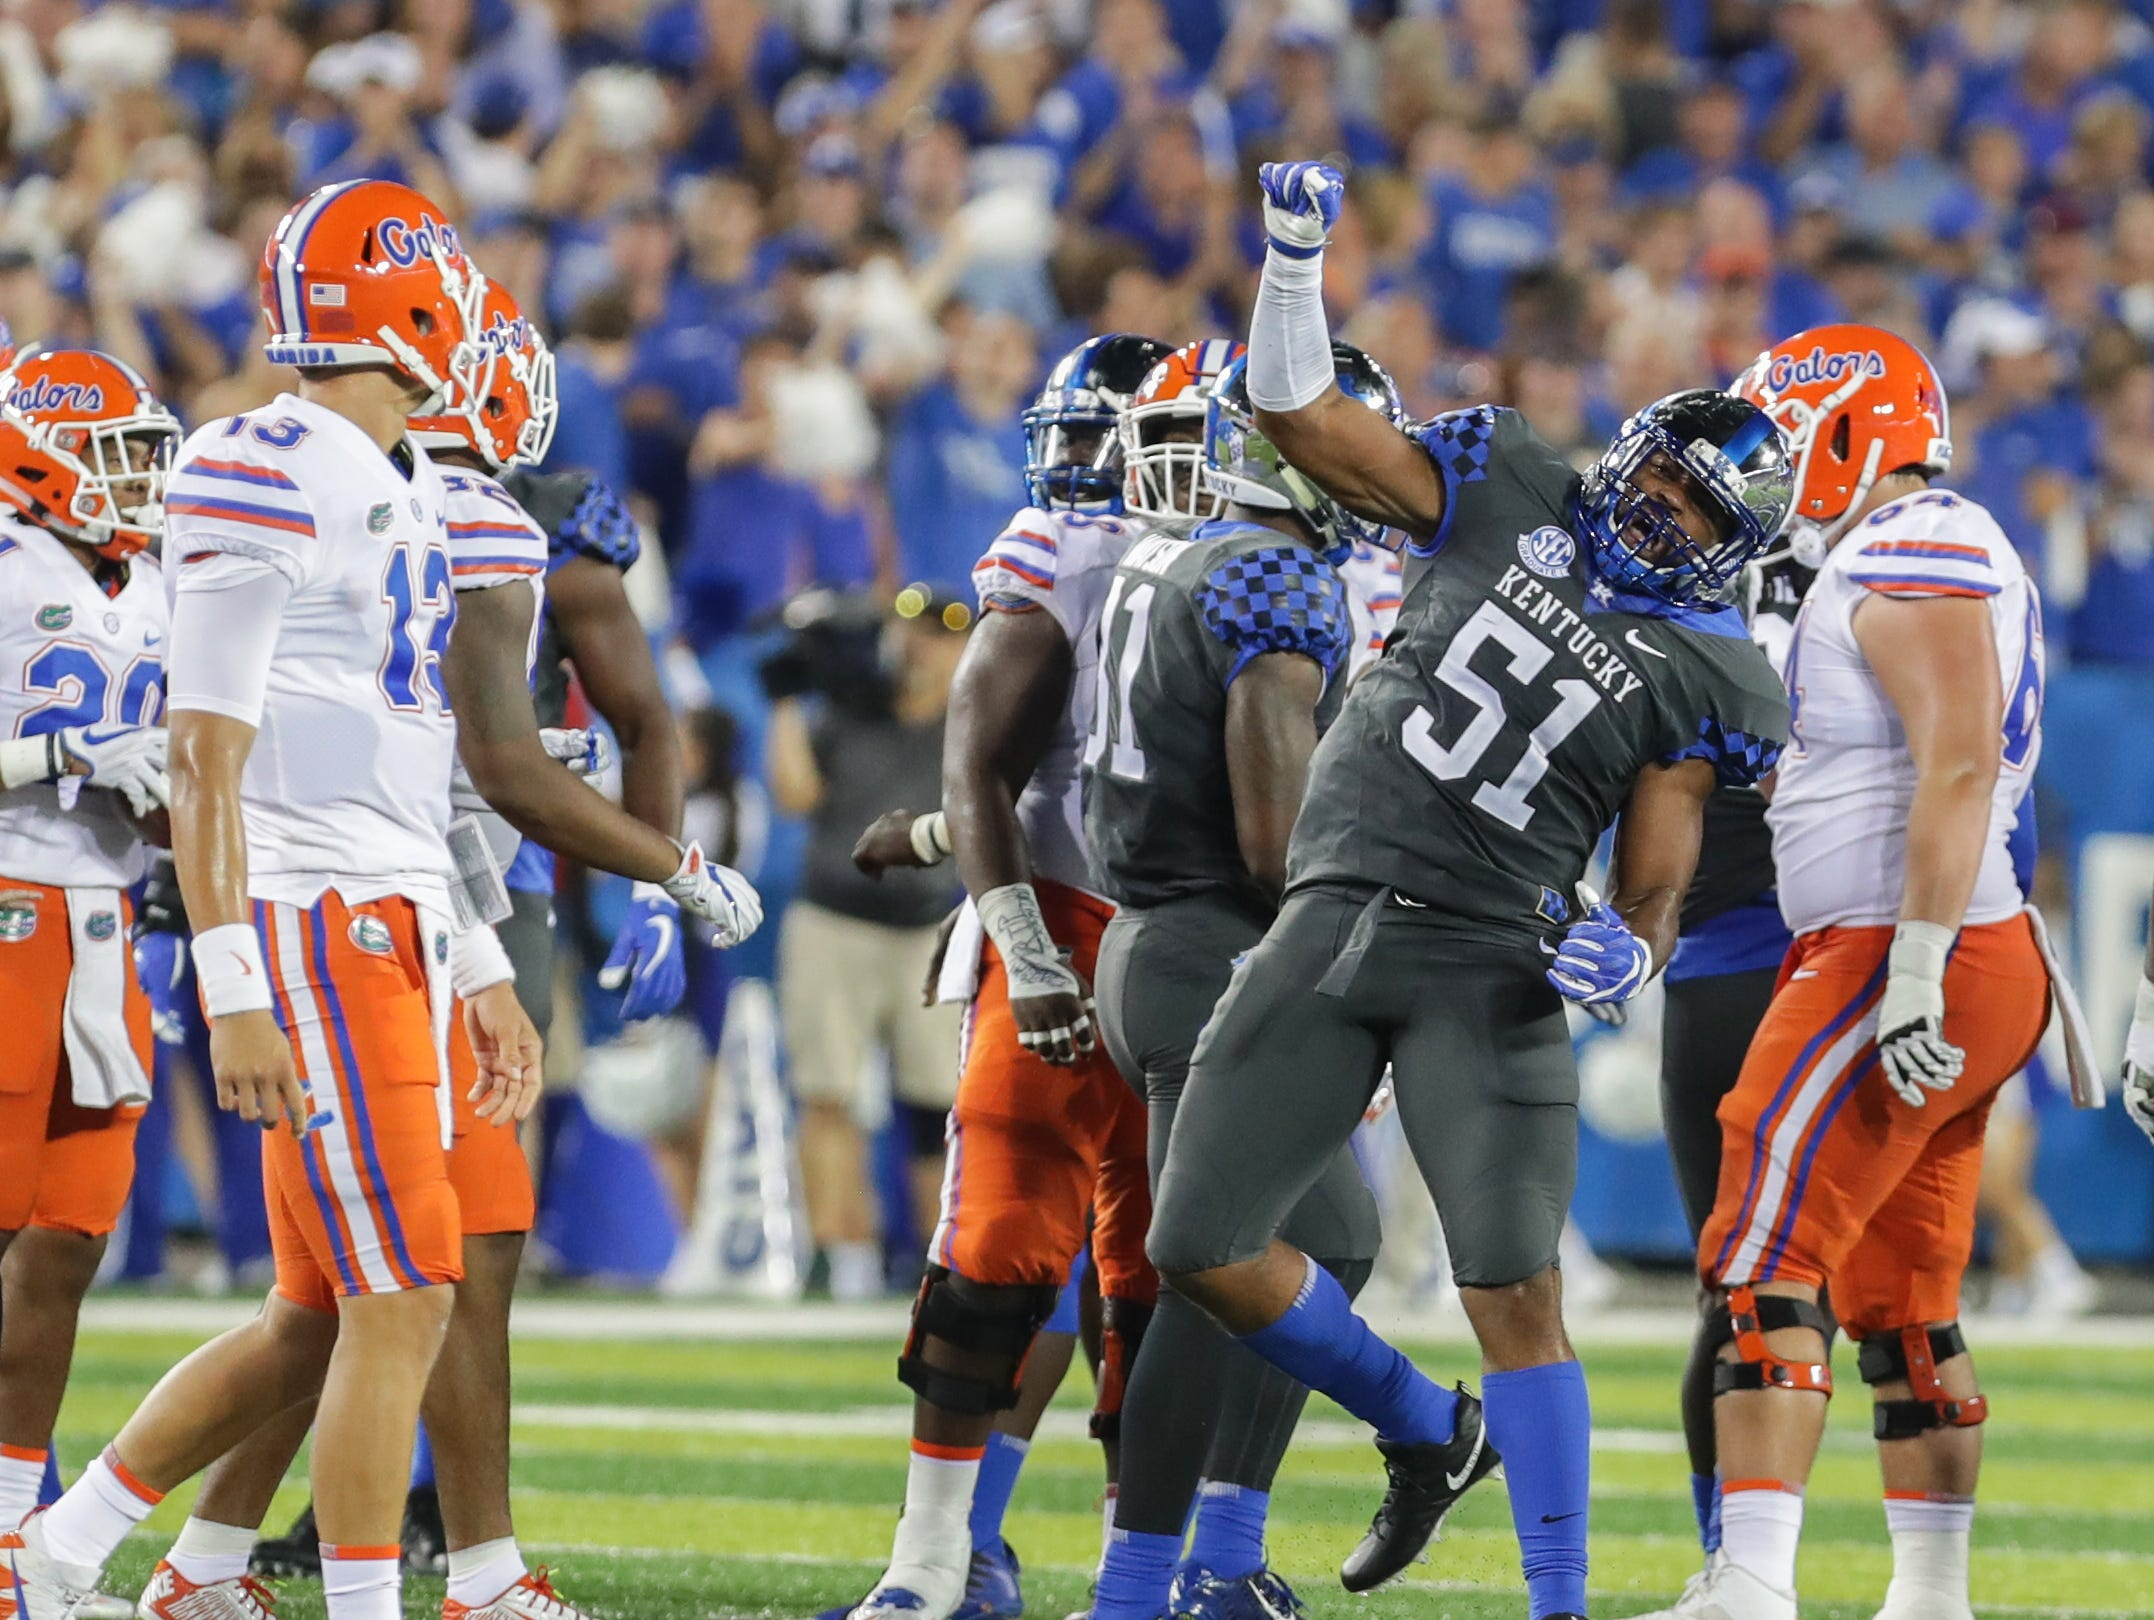 Kentucky's Courtney Love celebrates after a big tackle.